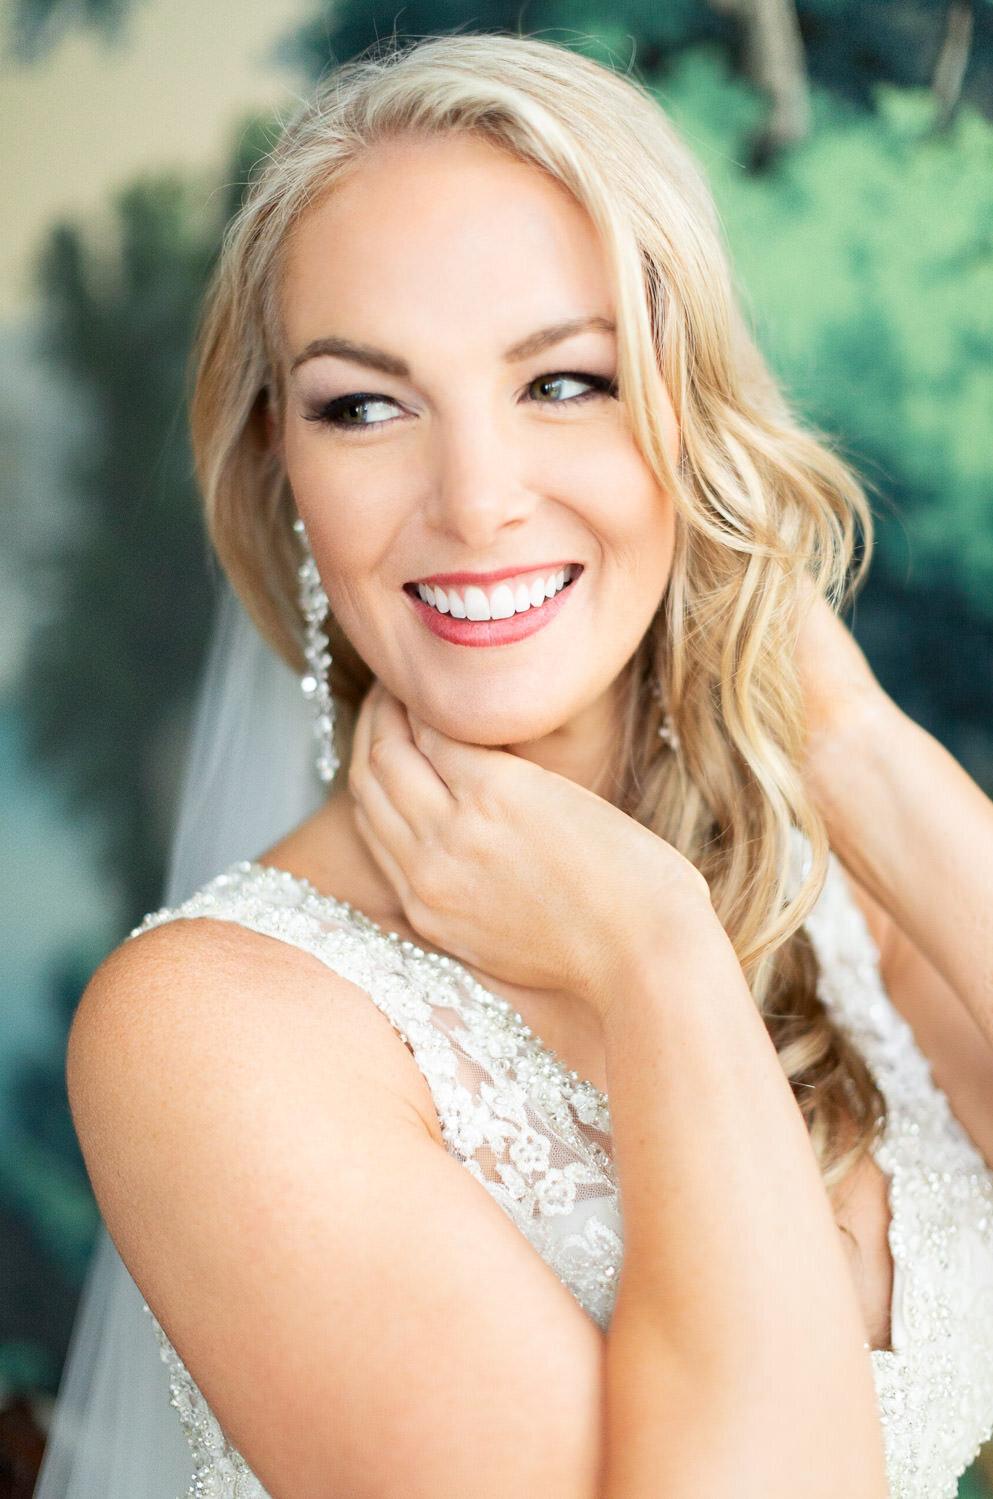 blond bride smiling with hands on neck in wedding dress  green background